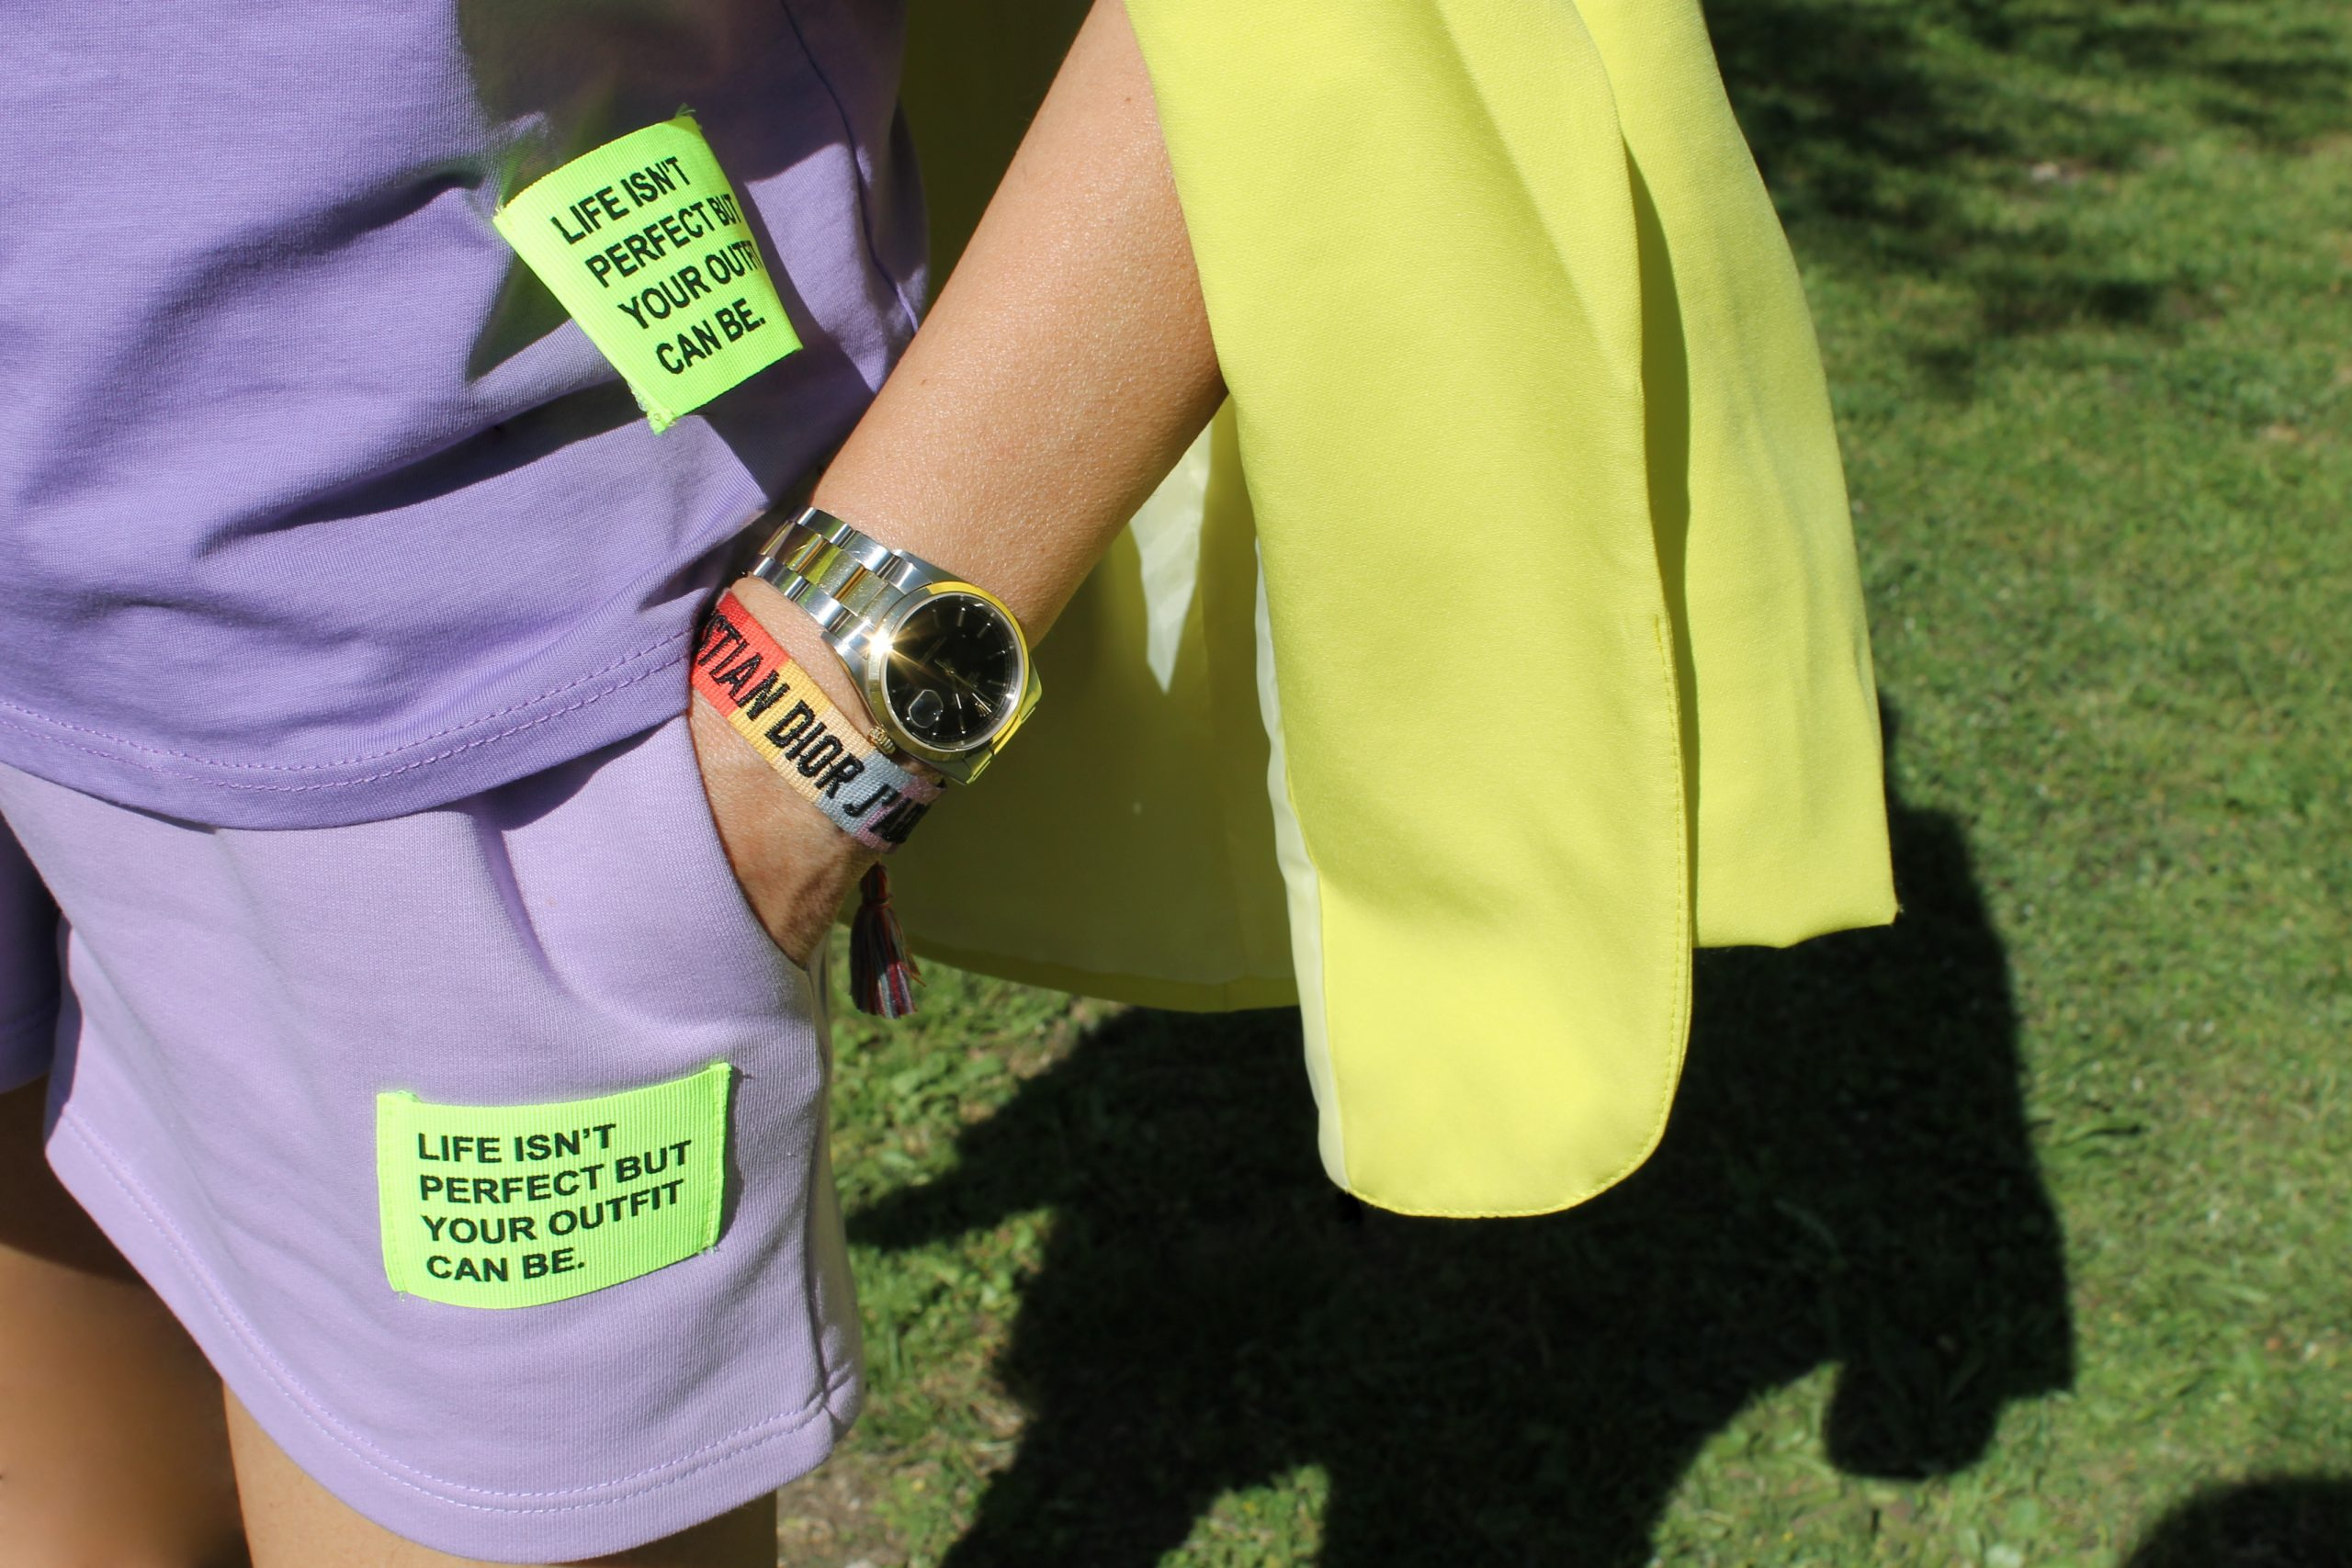 sporty comfy outfit lilac and yellow look Paola Lauretano